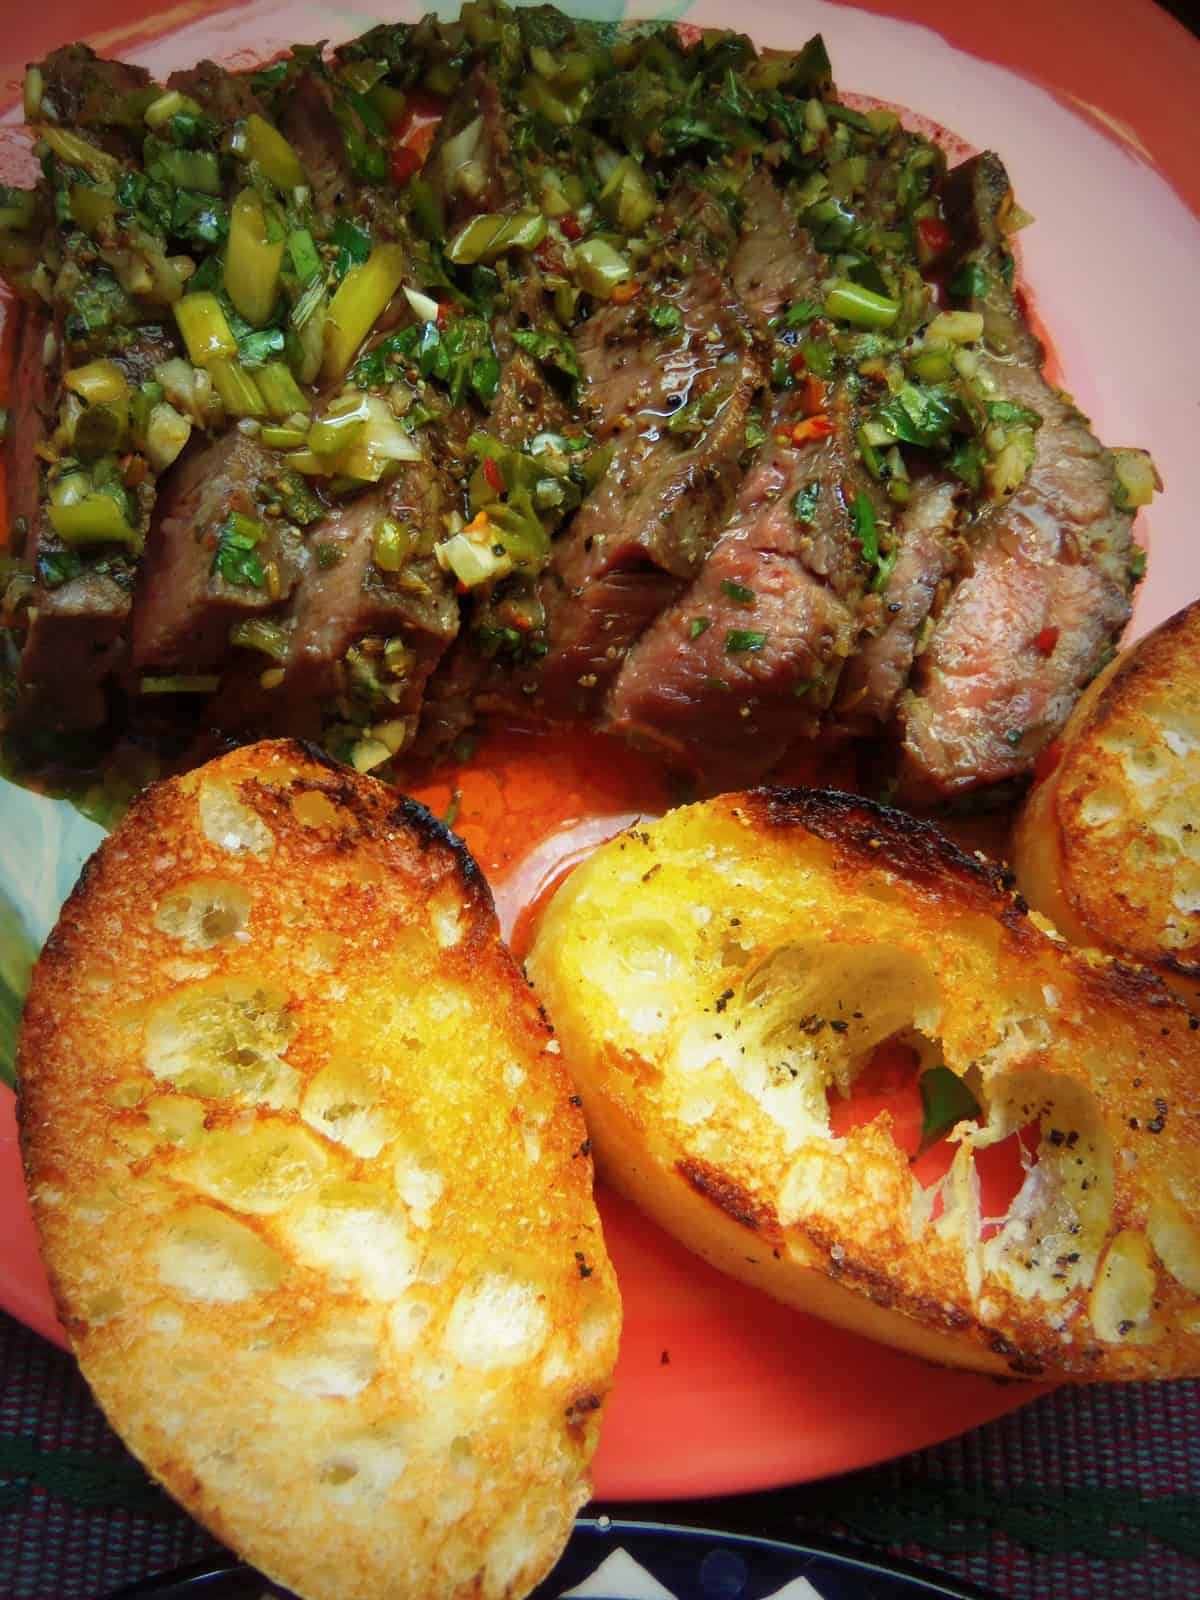 You must have some warm, toasted crostini for this steak to soak up all that wonderful chimichurri